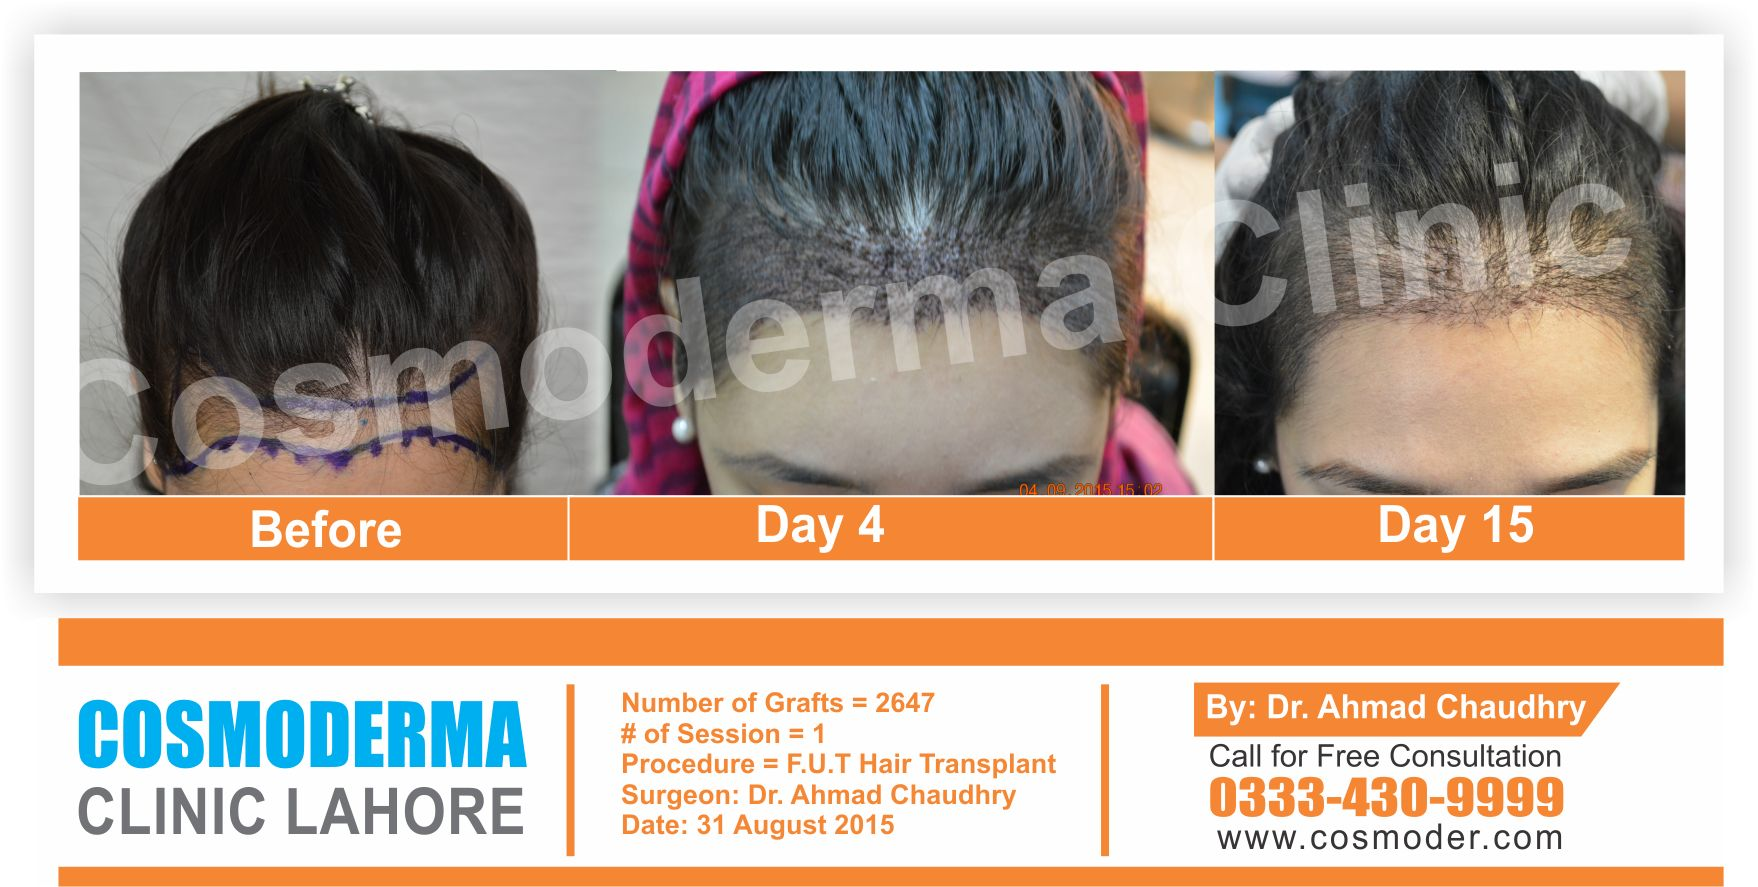 Female hair transplant in Pakistan by Dr.Ahmad